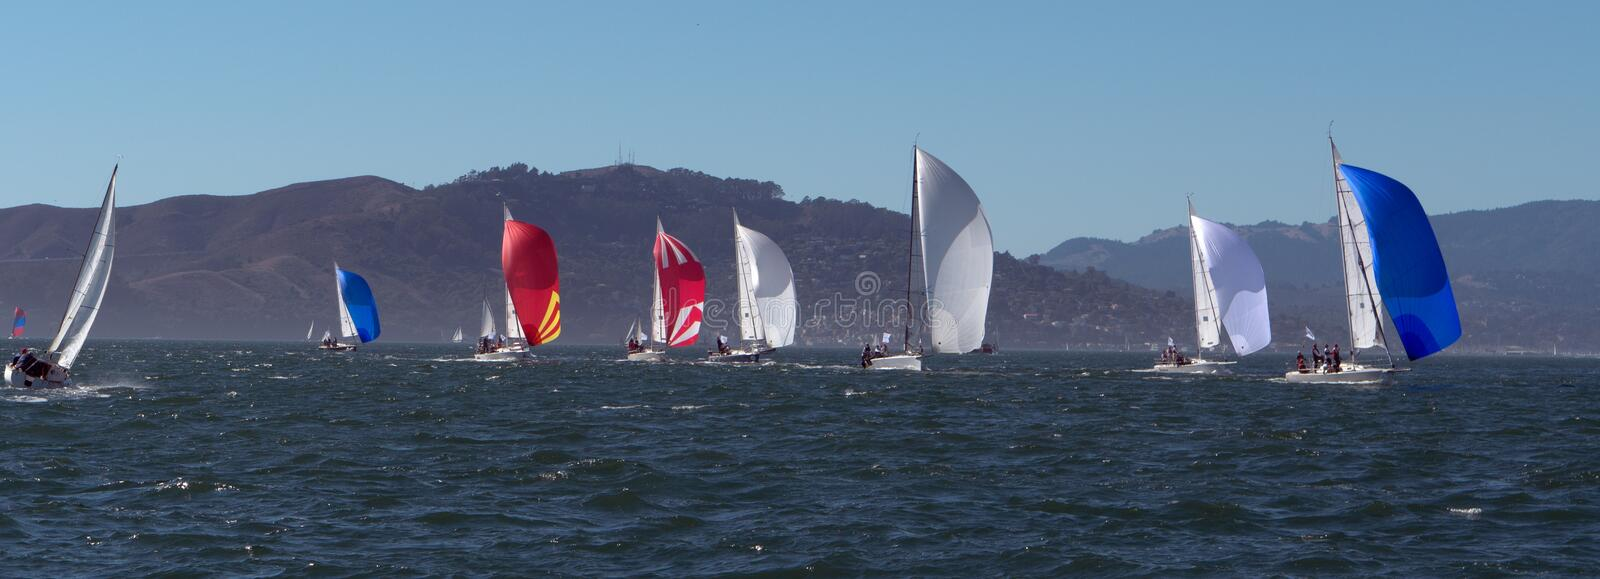 Sailboats with spinnakers at Rolex Cup. Sailboats flying spinnakers competing at Rolex Cup sailing event in San Francisco September 2015 royalty free stock photo